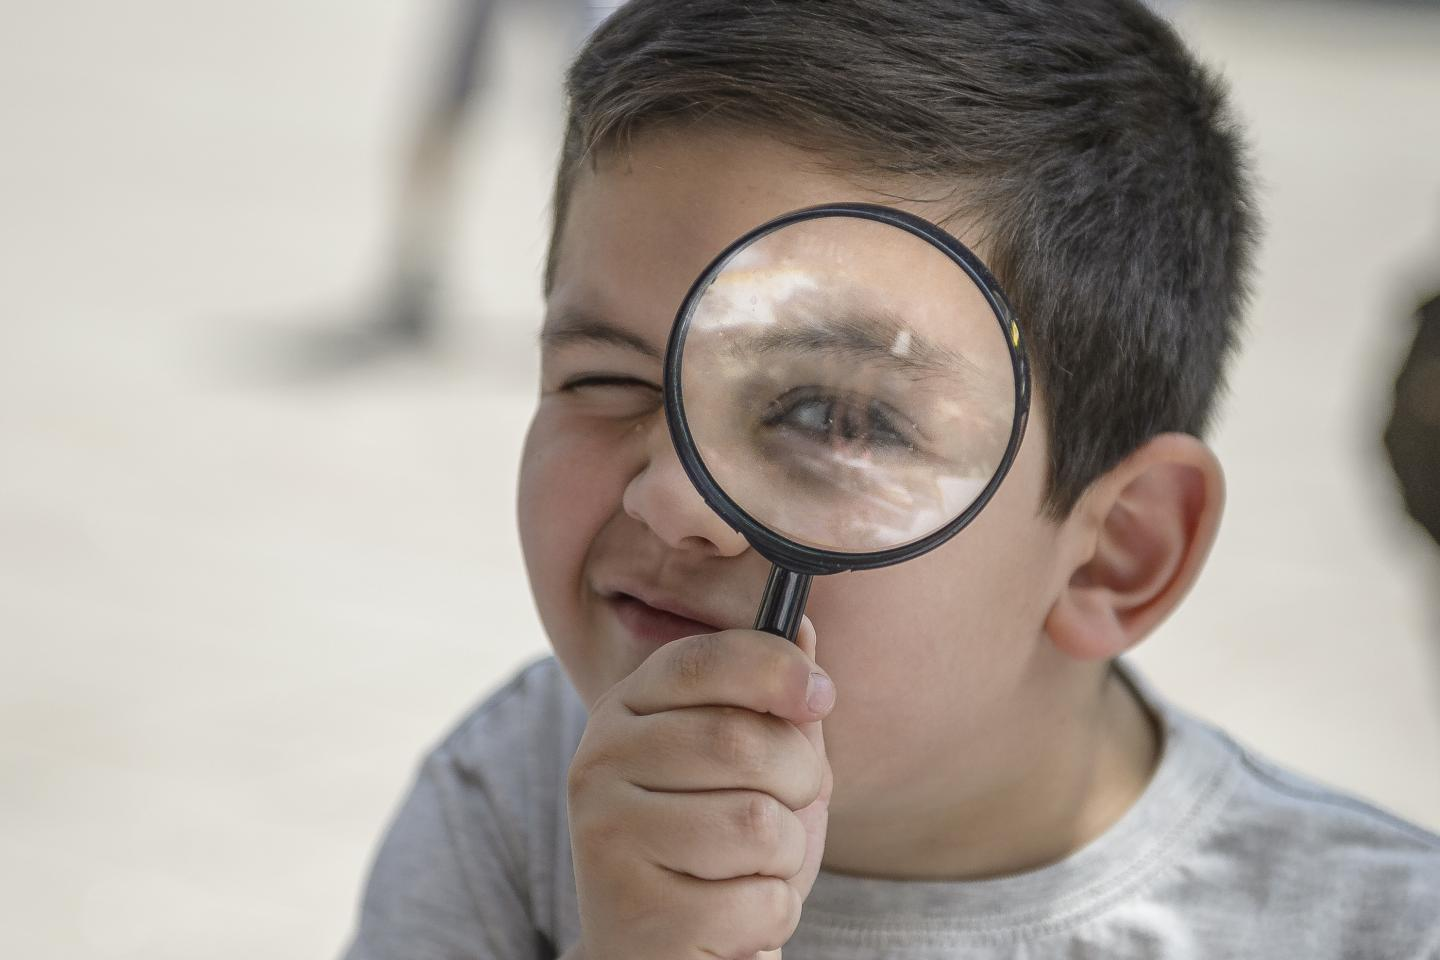 A boy looking at the camera through the magnifying glass